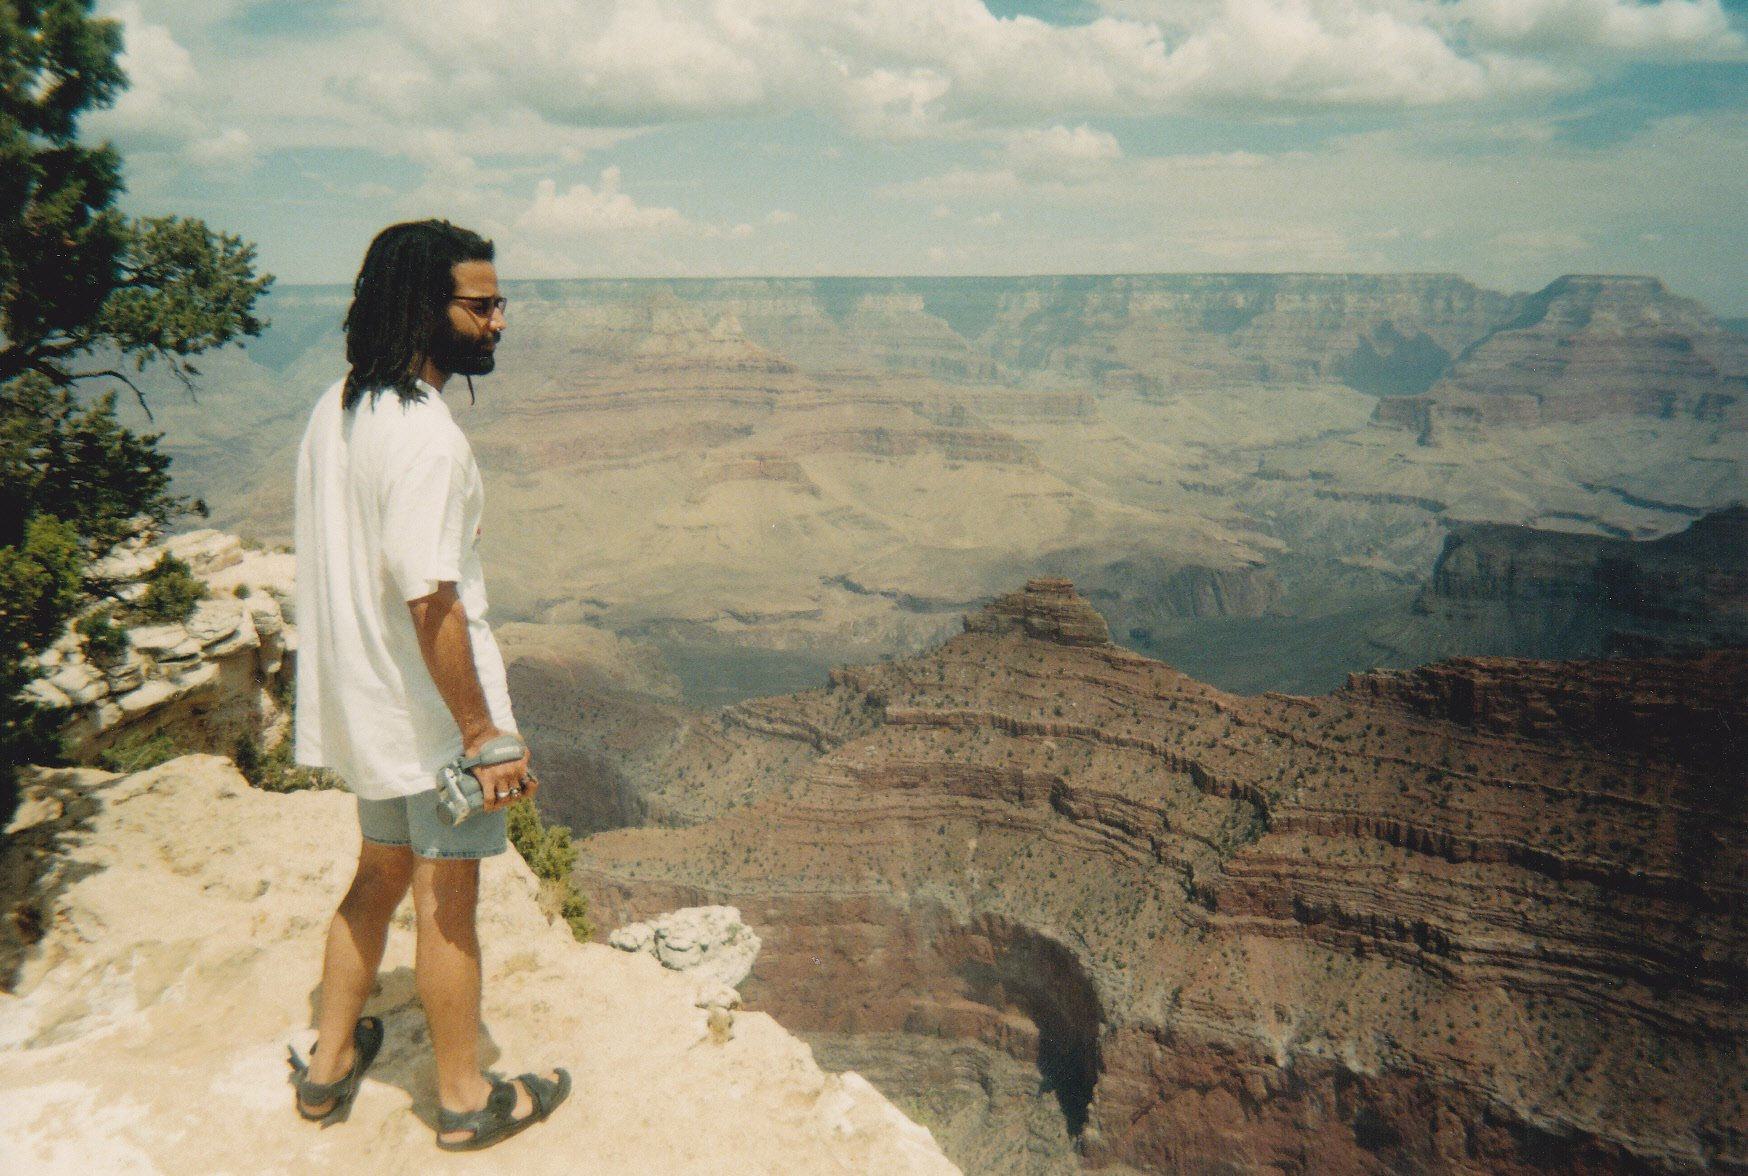 At the Grand Canyon back in the DAY!